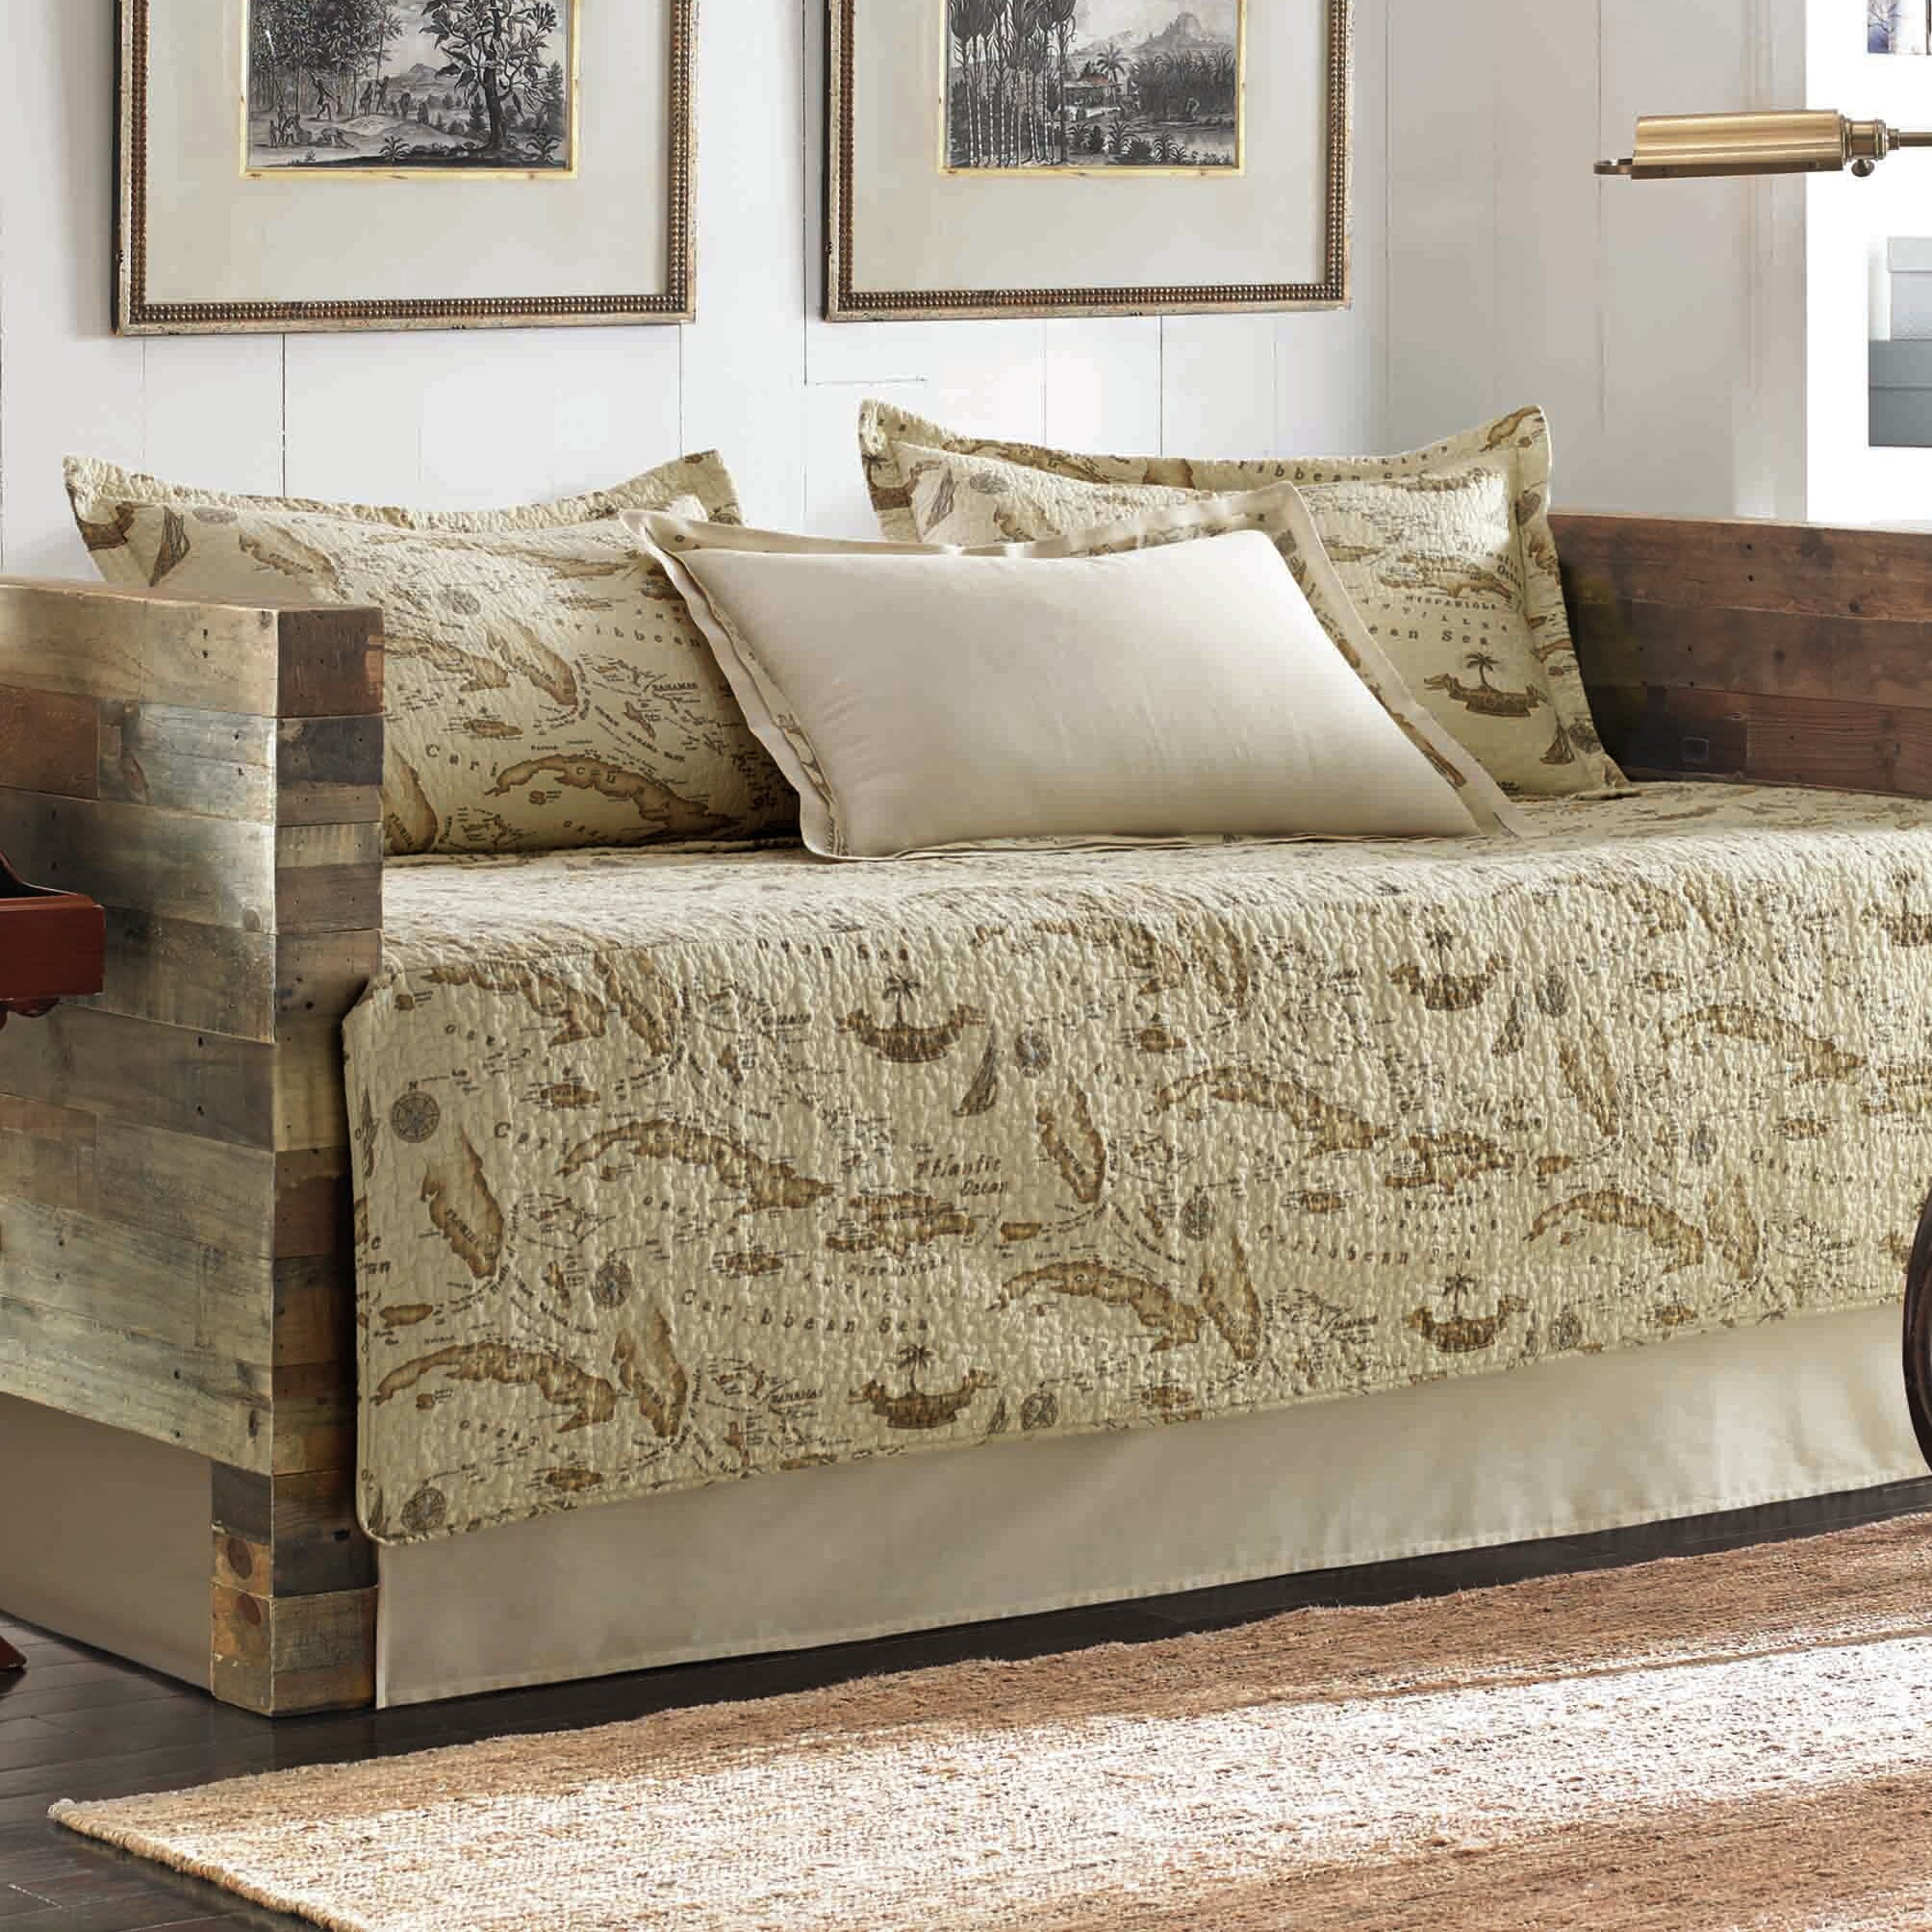 Tommy bahama home map 5 piece daybed cover set by tommy bahama tommy bahama home map 5 piece daybed cover set by tommy bahama bedding reviews wayfair gumiabroncs Gallery